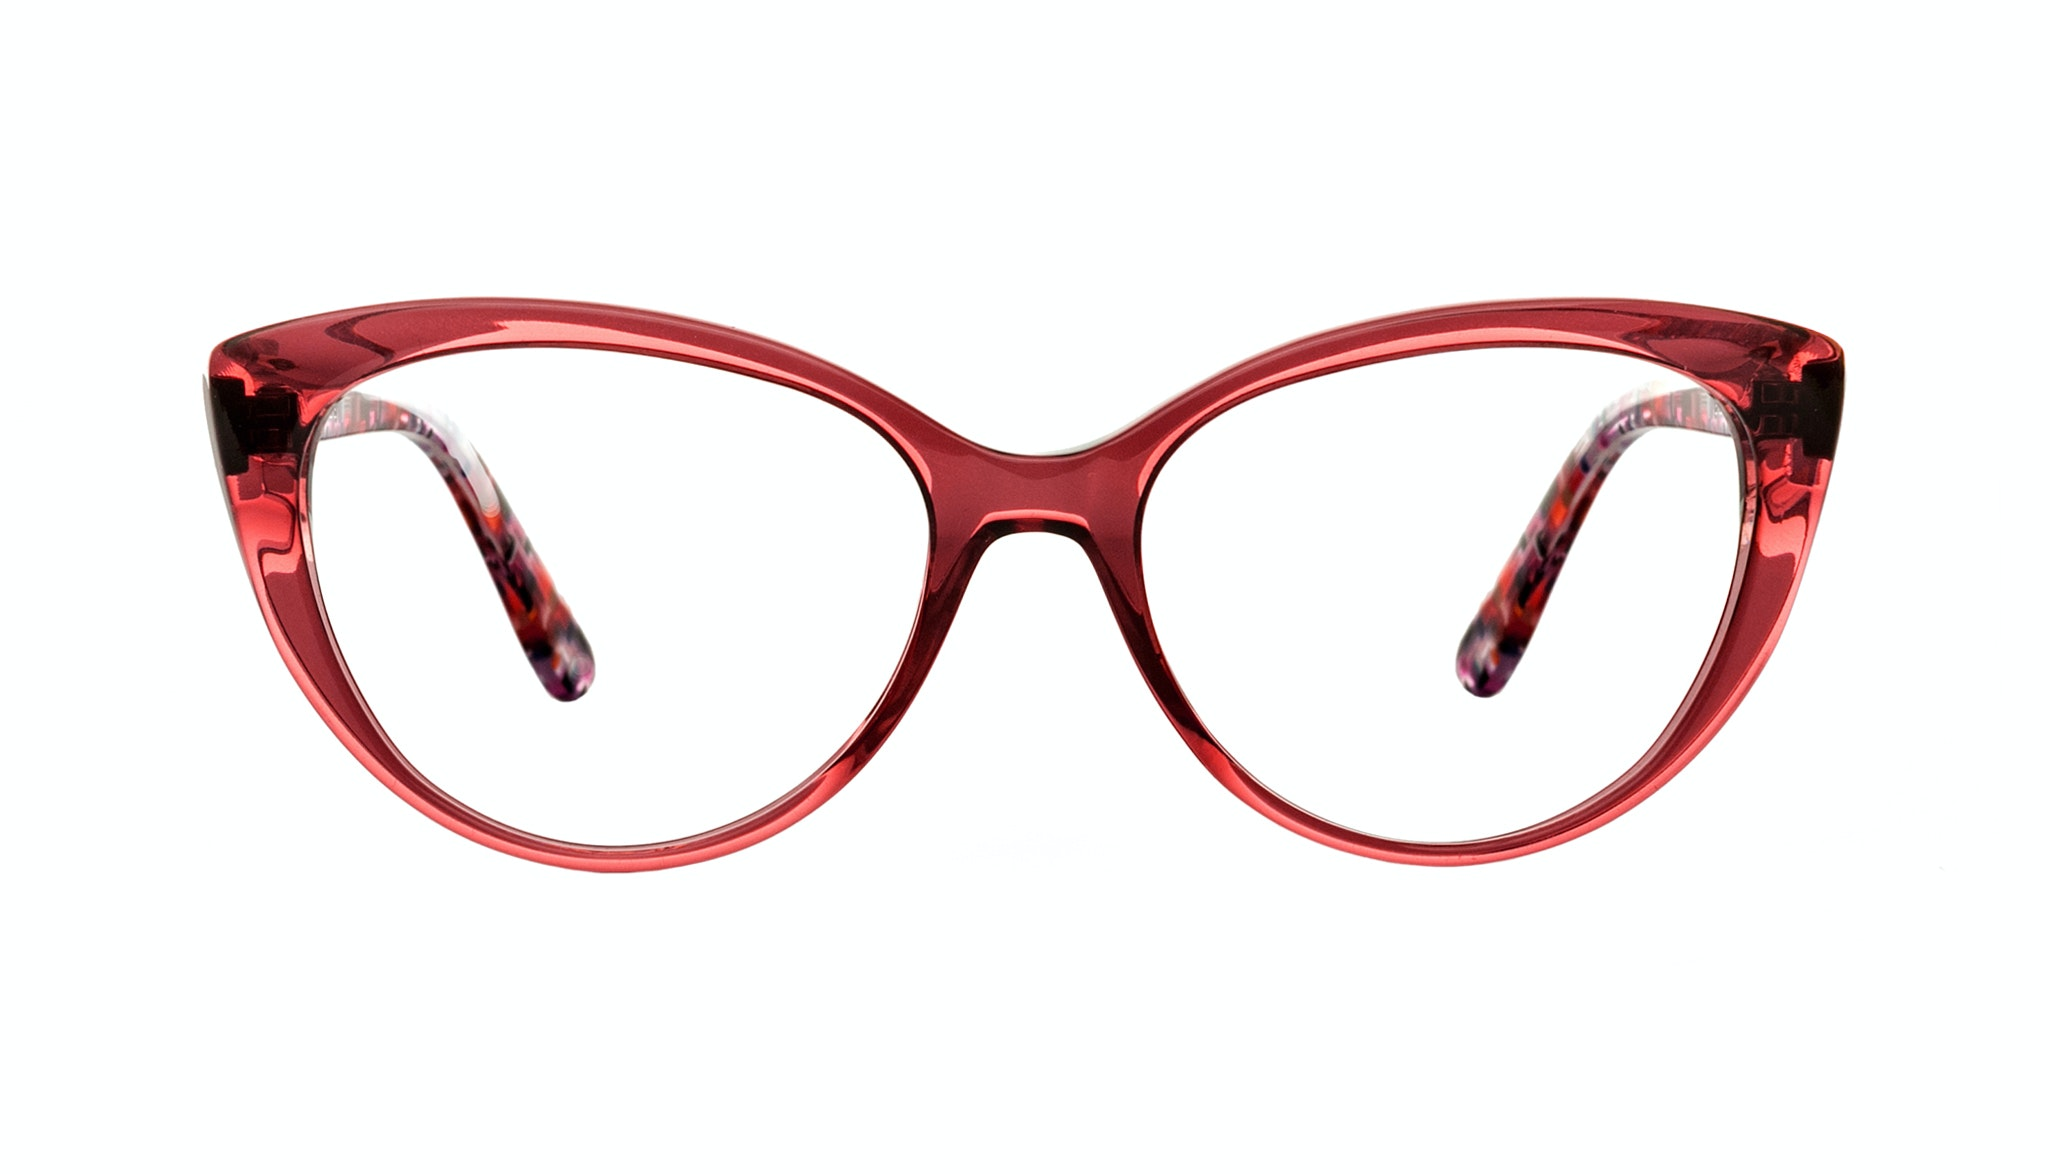 Affordable Fashion Glasses Cat Eye Eyeglasses Women Bliss Pink Berry